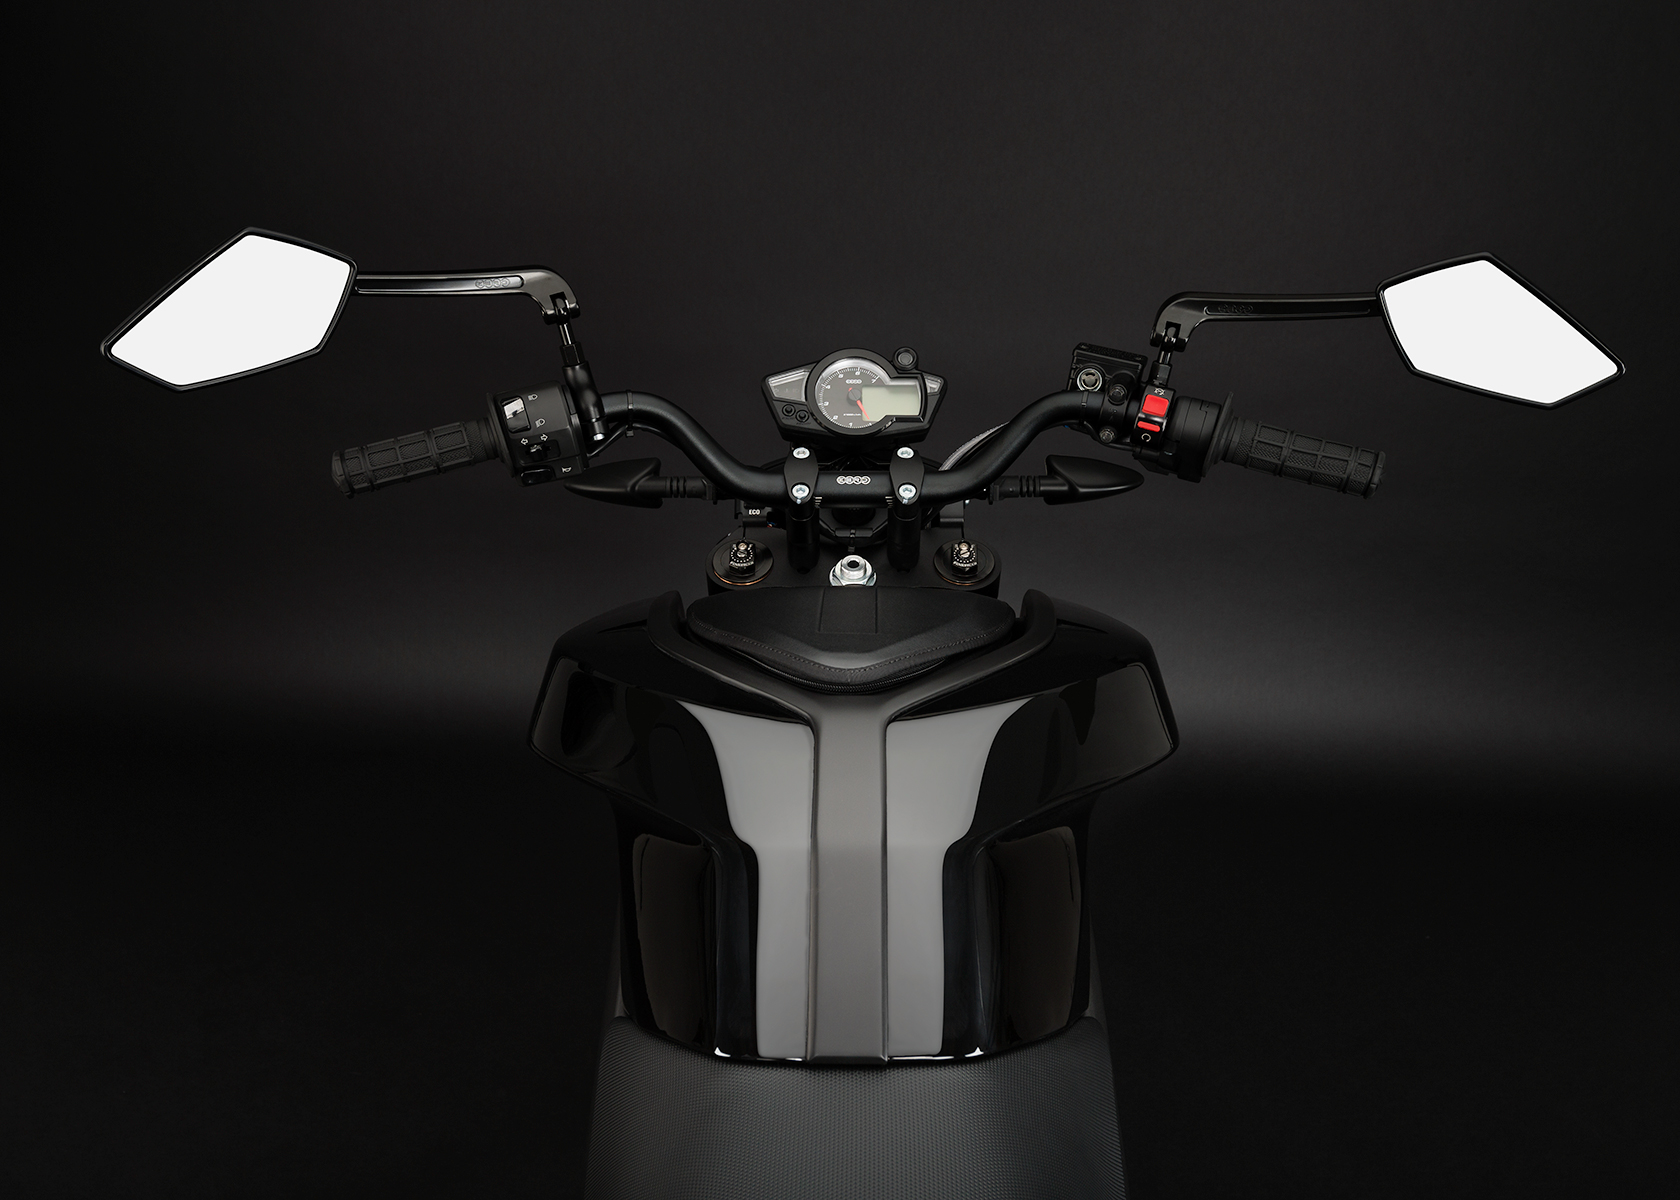 2013 Zero S Electric Motorcycle: Rider View